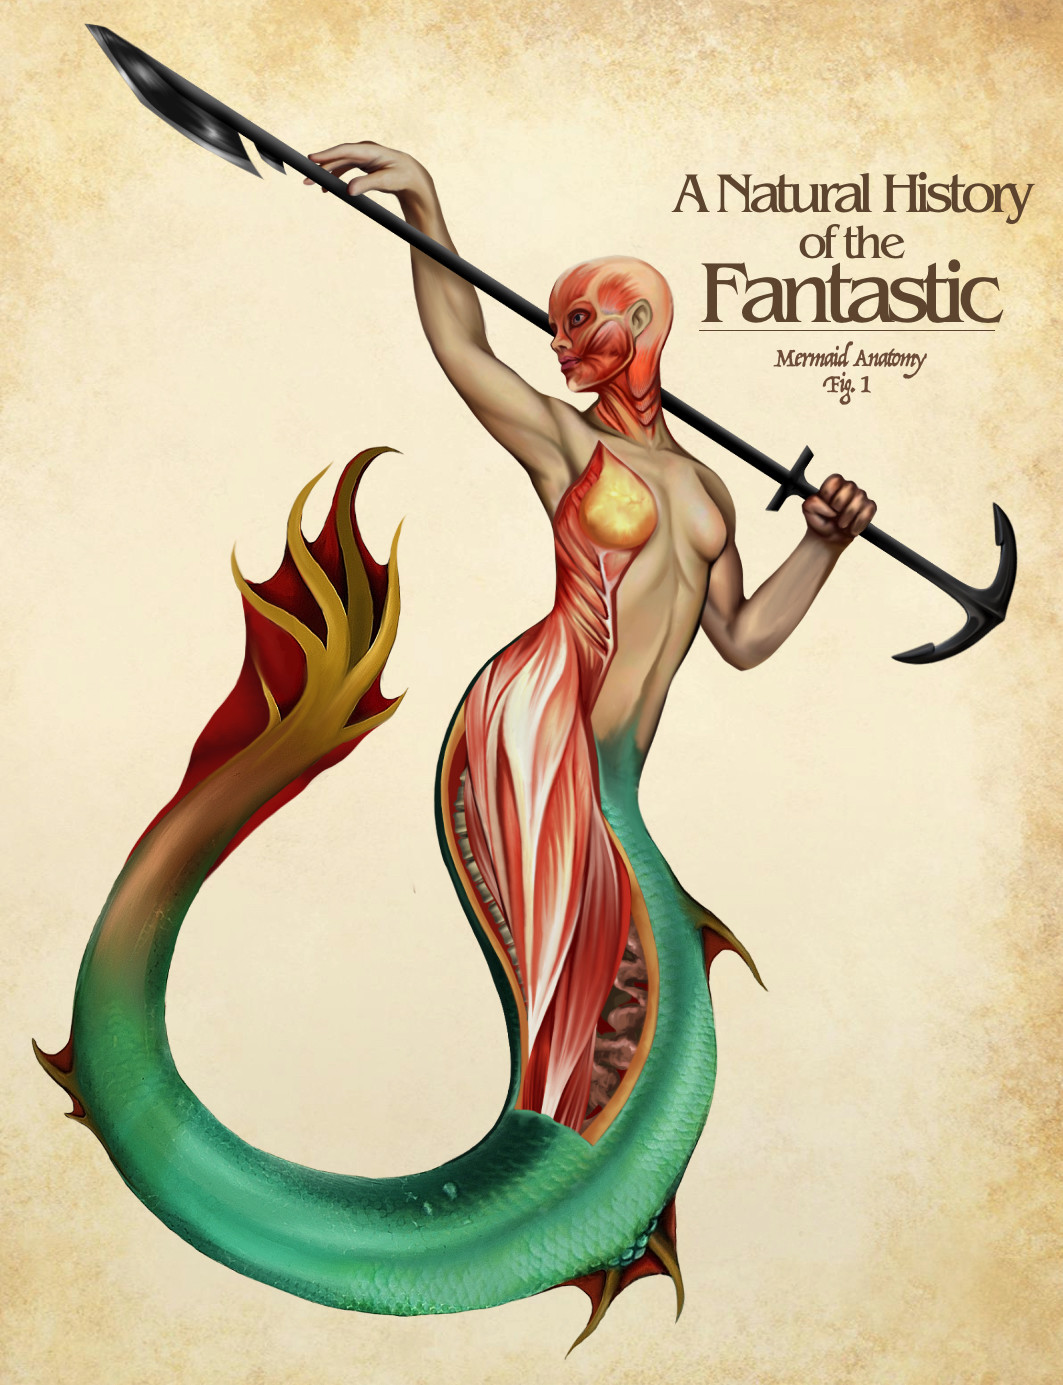 ArtStation - A Natural History of the Fantastic, Christopher Stoll